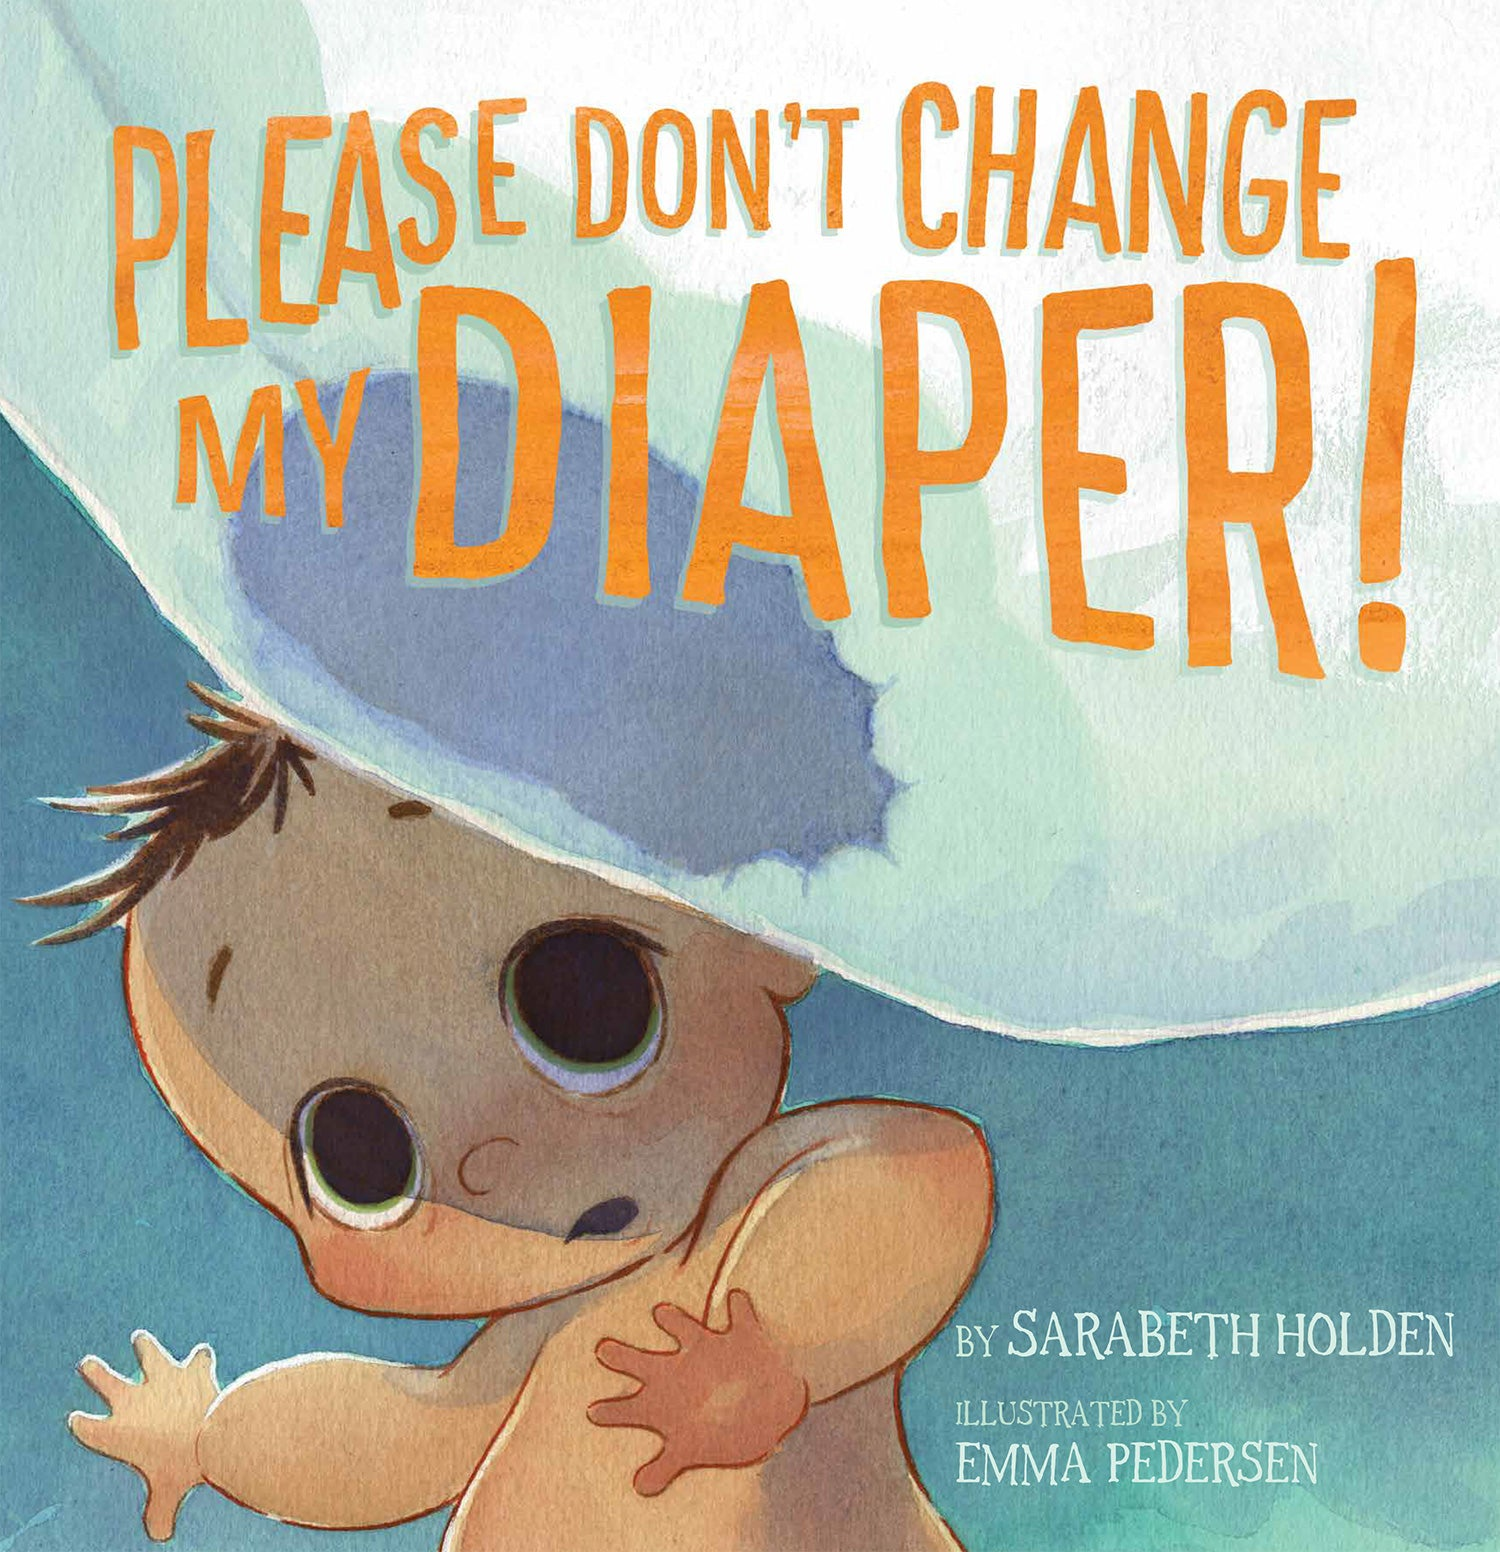 Please Don't Change My Diaper!